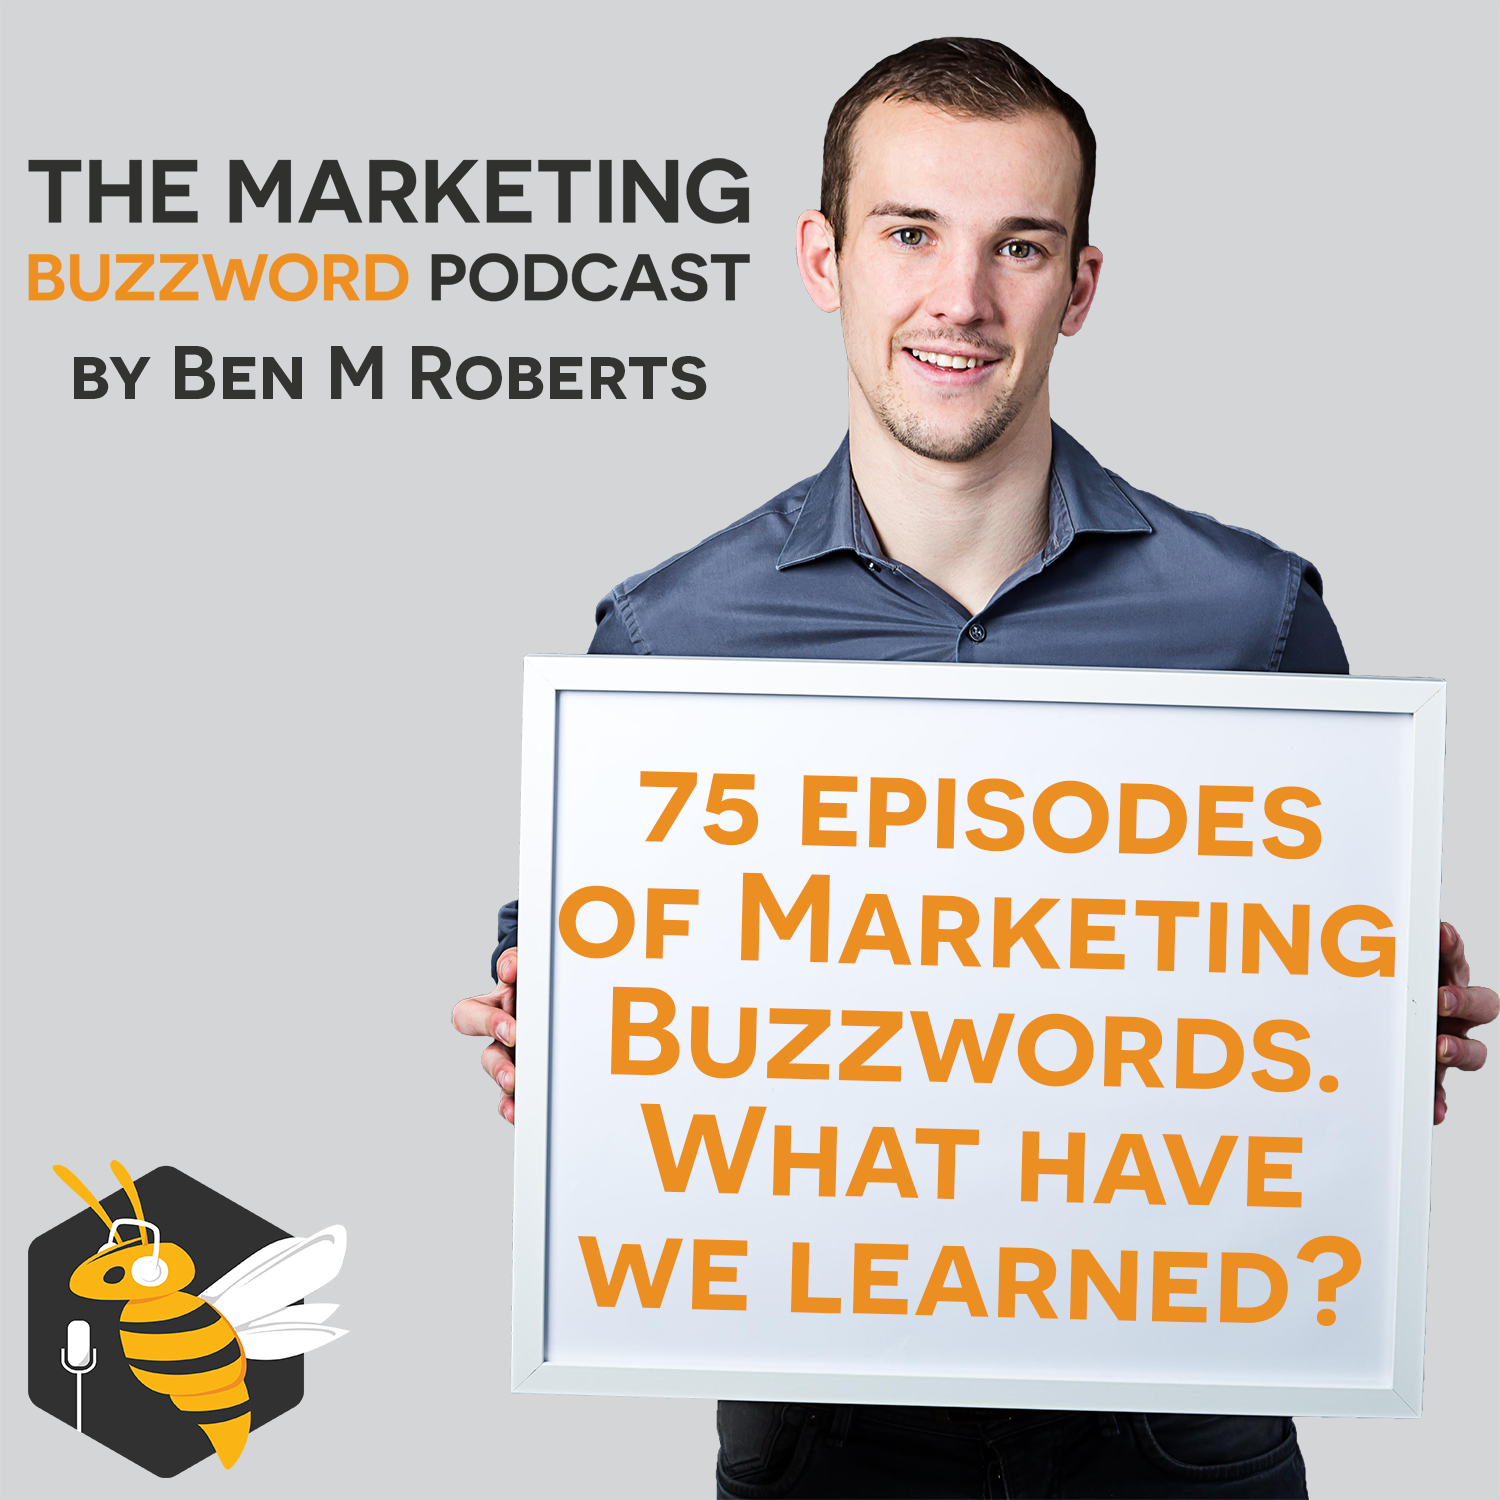 75 Episodes of Marketing Buzzwords - What have we learned?